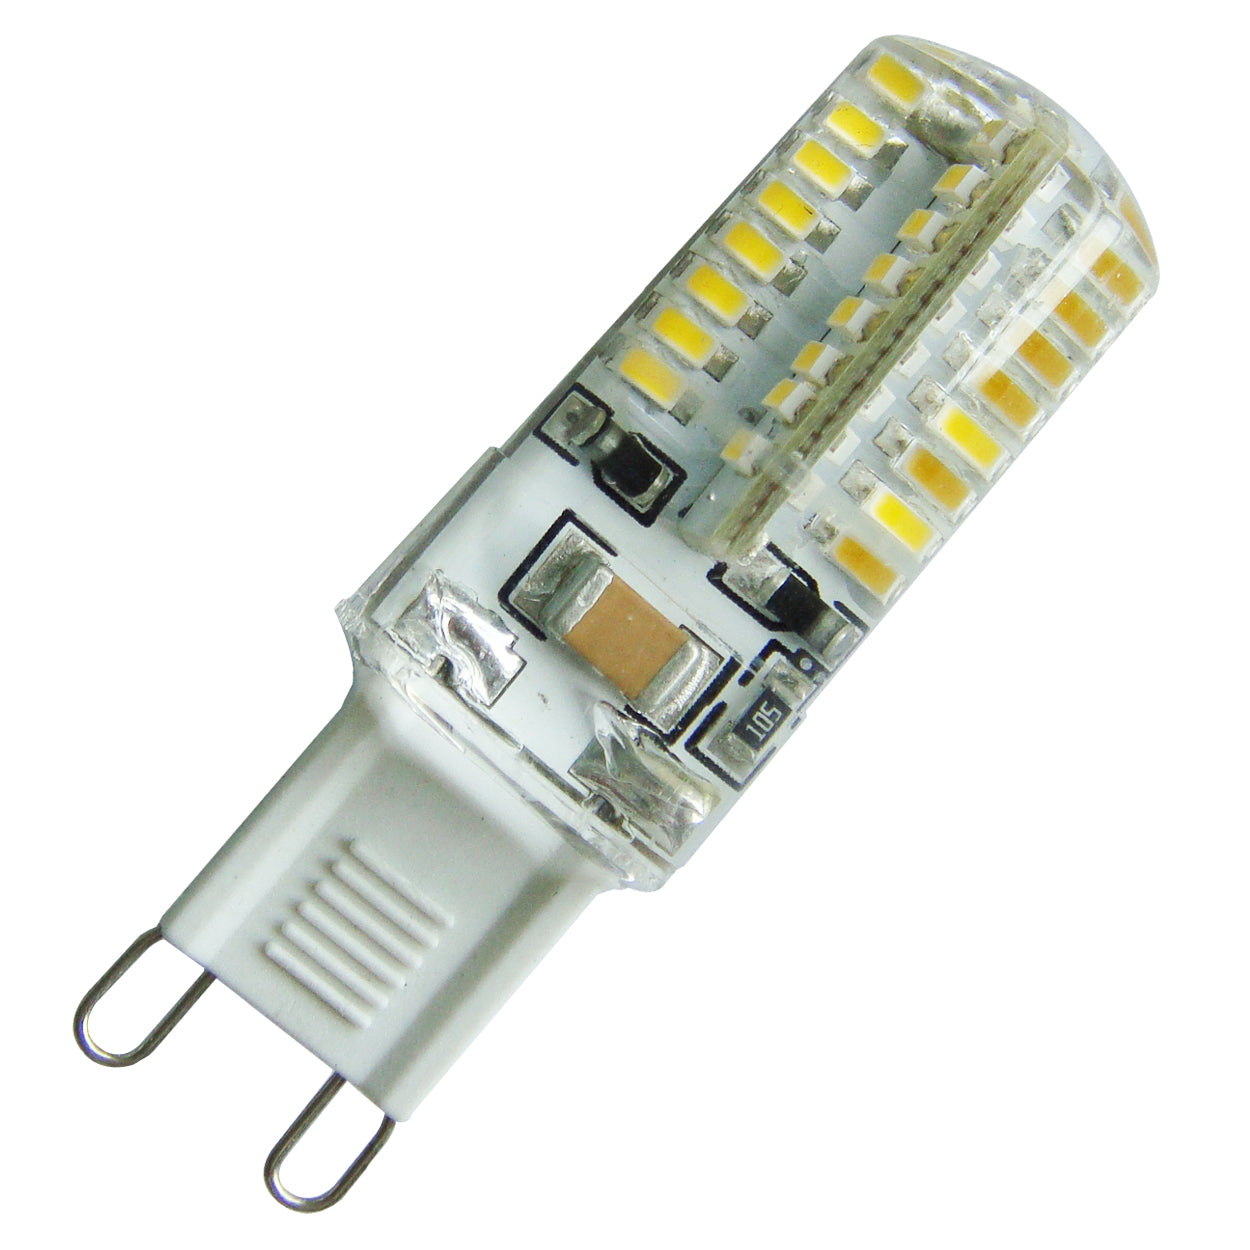 UEP 3w LED G9 Capsule Bulb 2700K Warm White